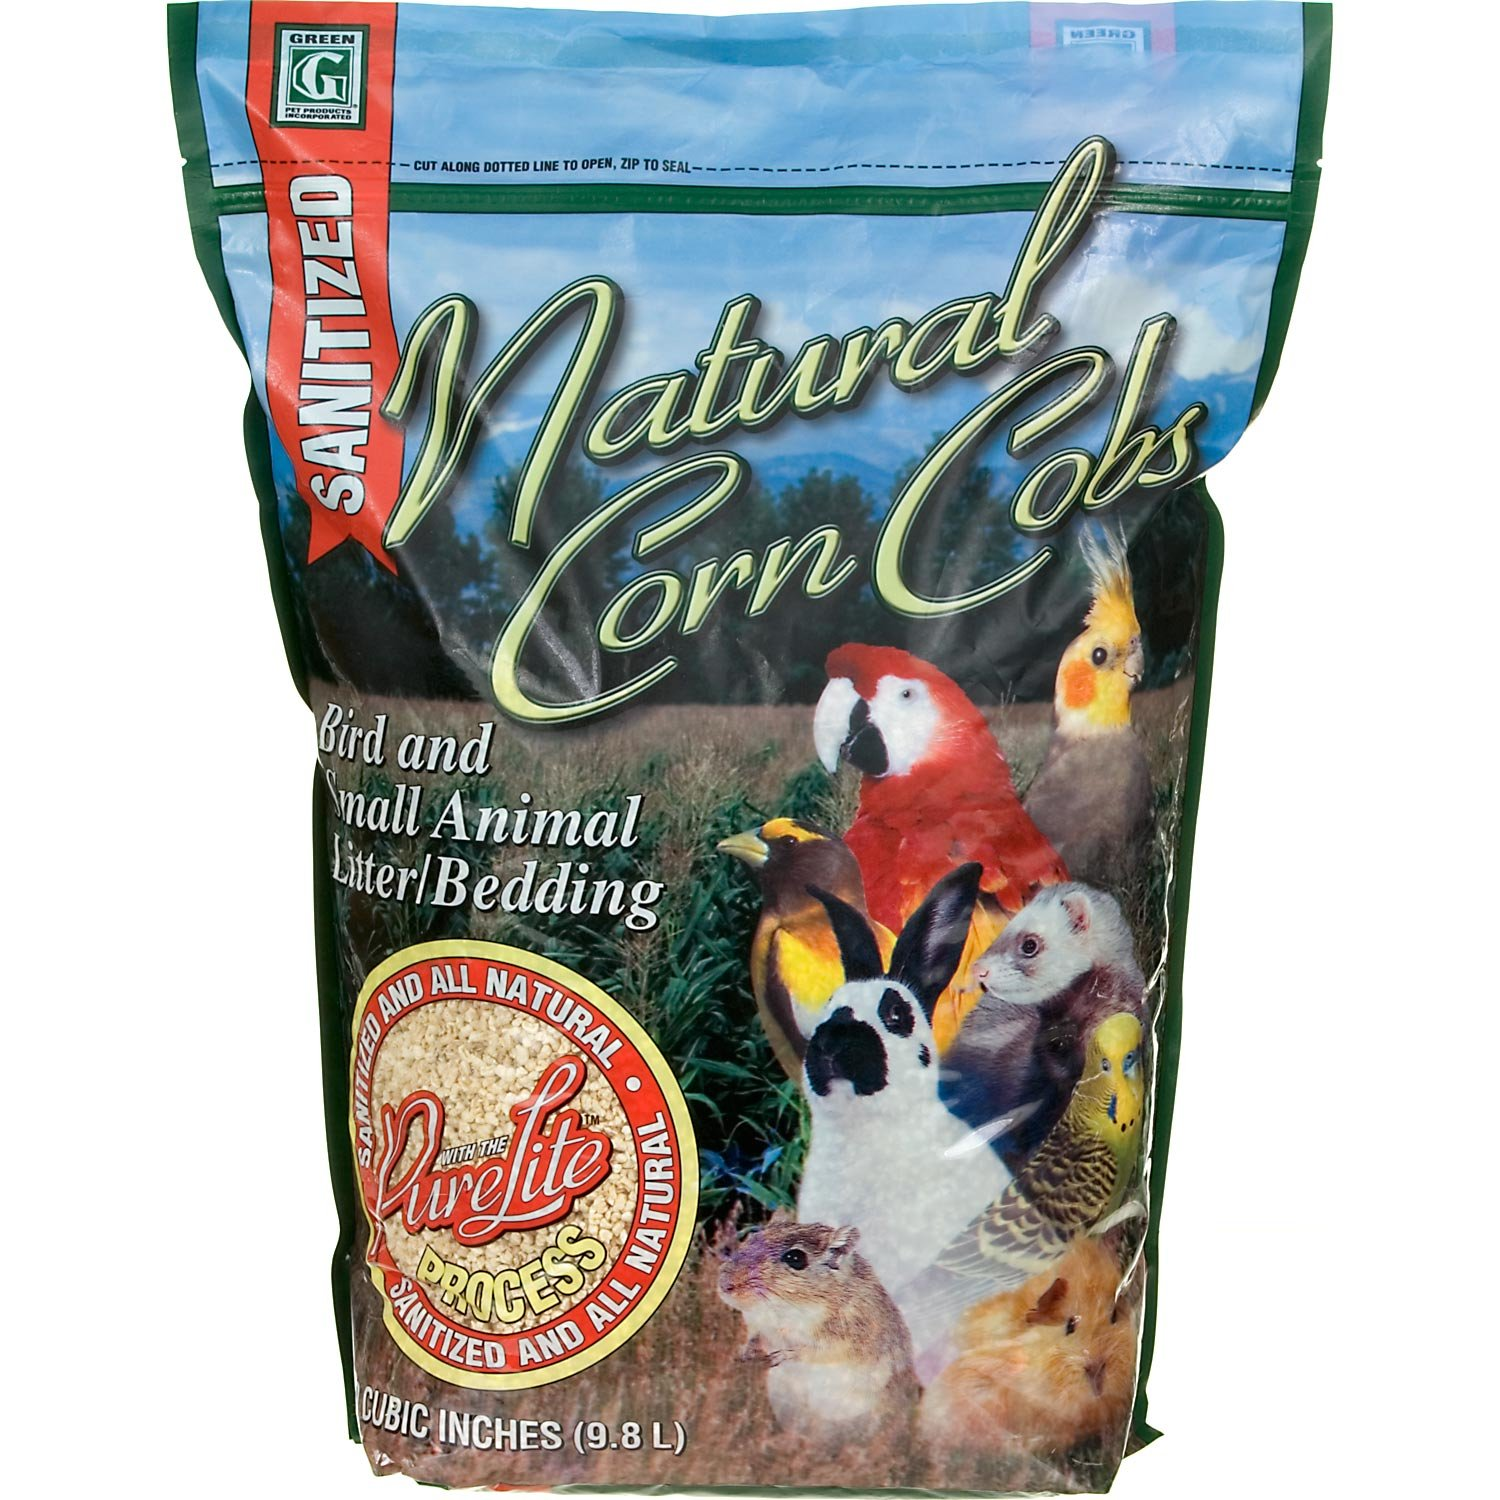 Absorbtion Corp Pet Products Natural Corn Cob Purelite Litter, 600 Cubic Inch, Green 100245